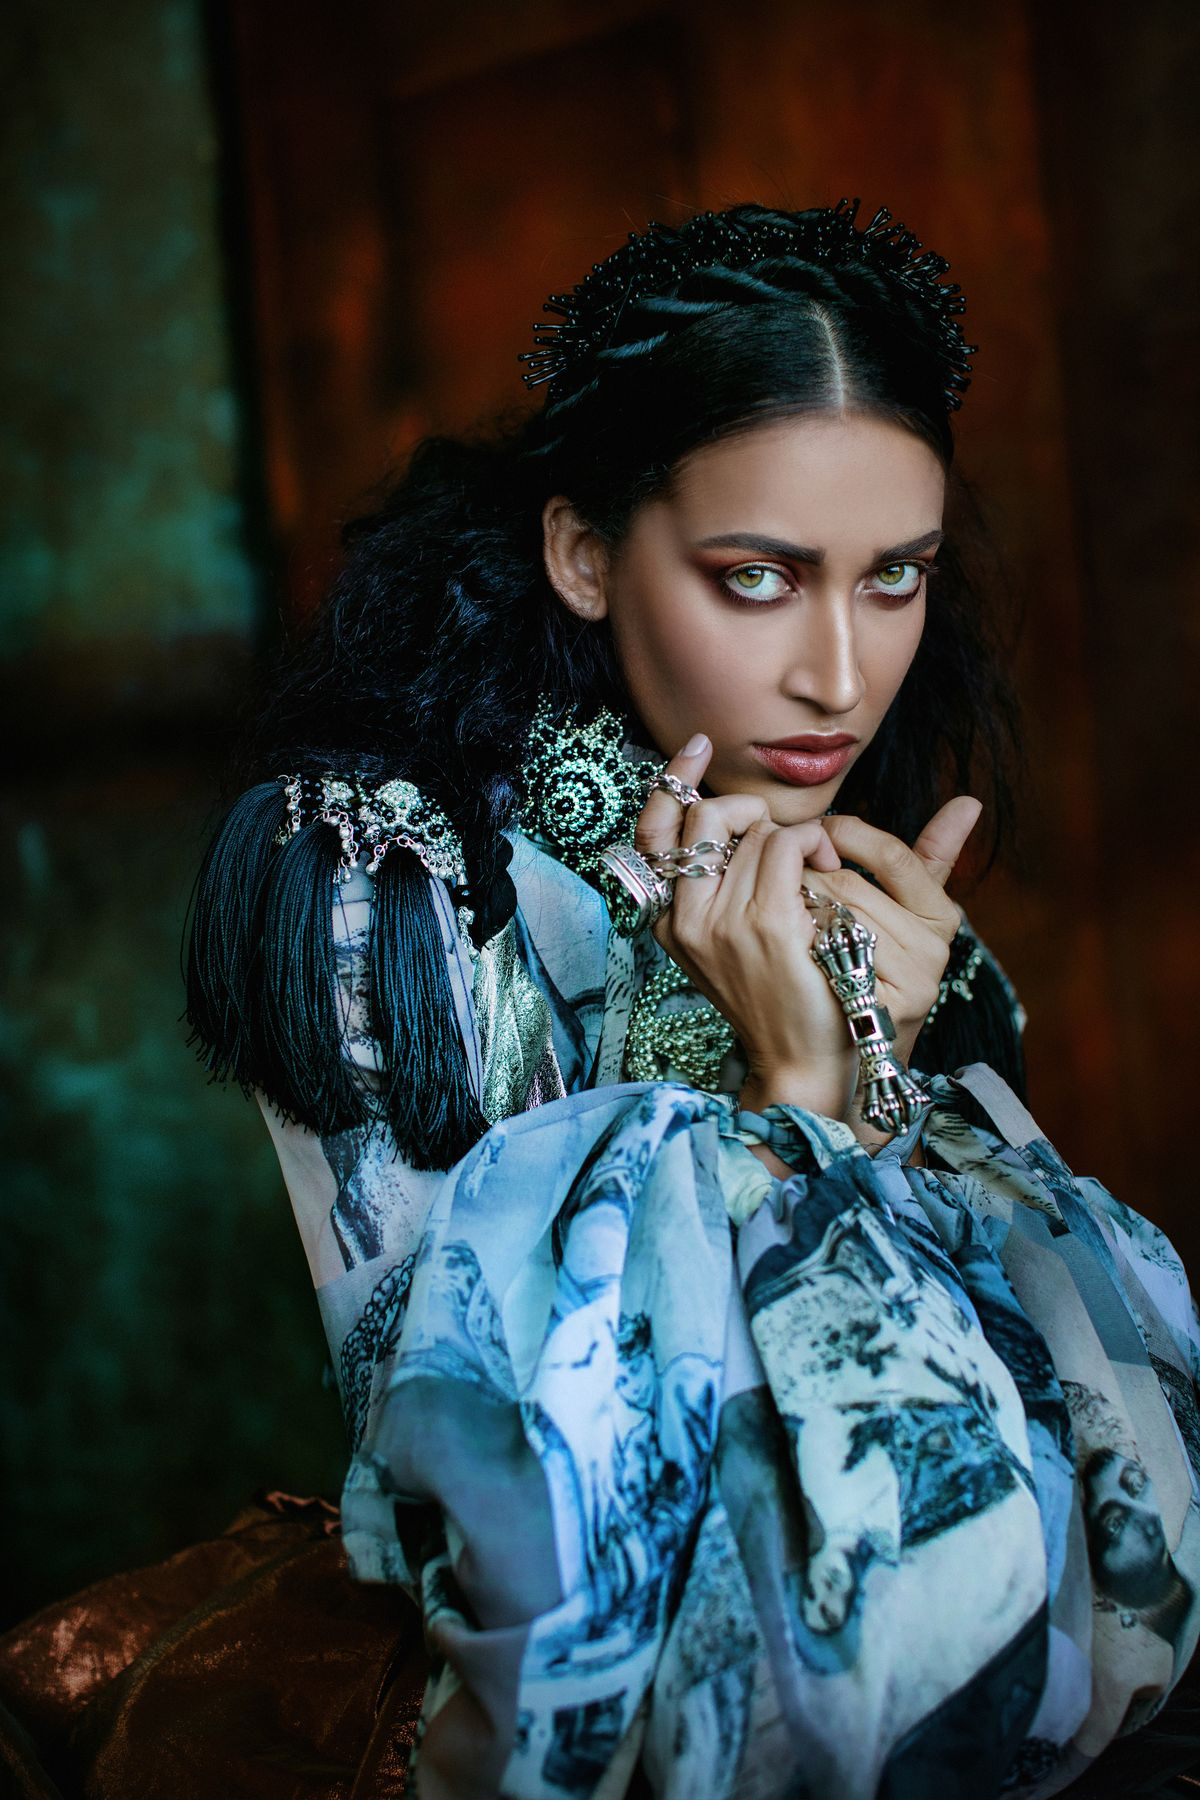 Historically inspired fashion photography by Ekaterina Belinskaya.